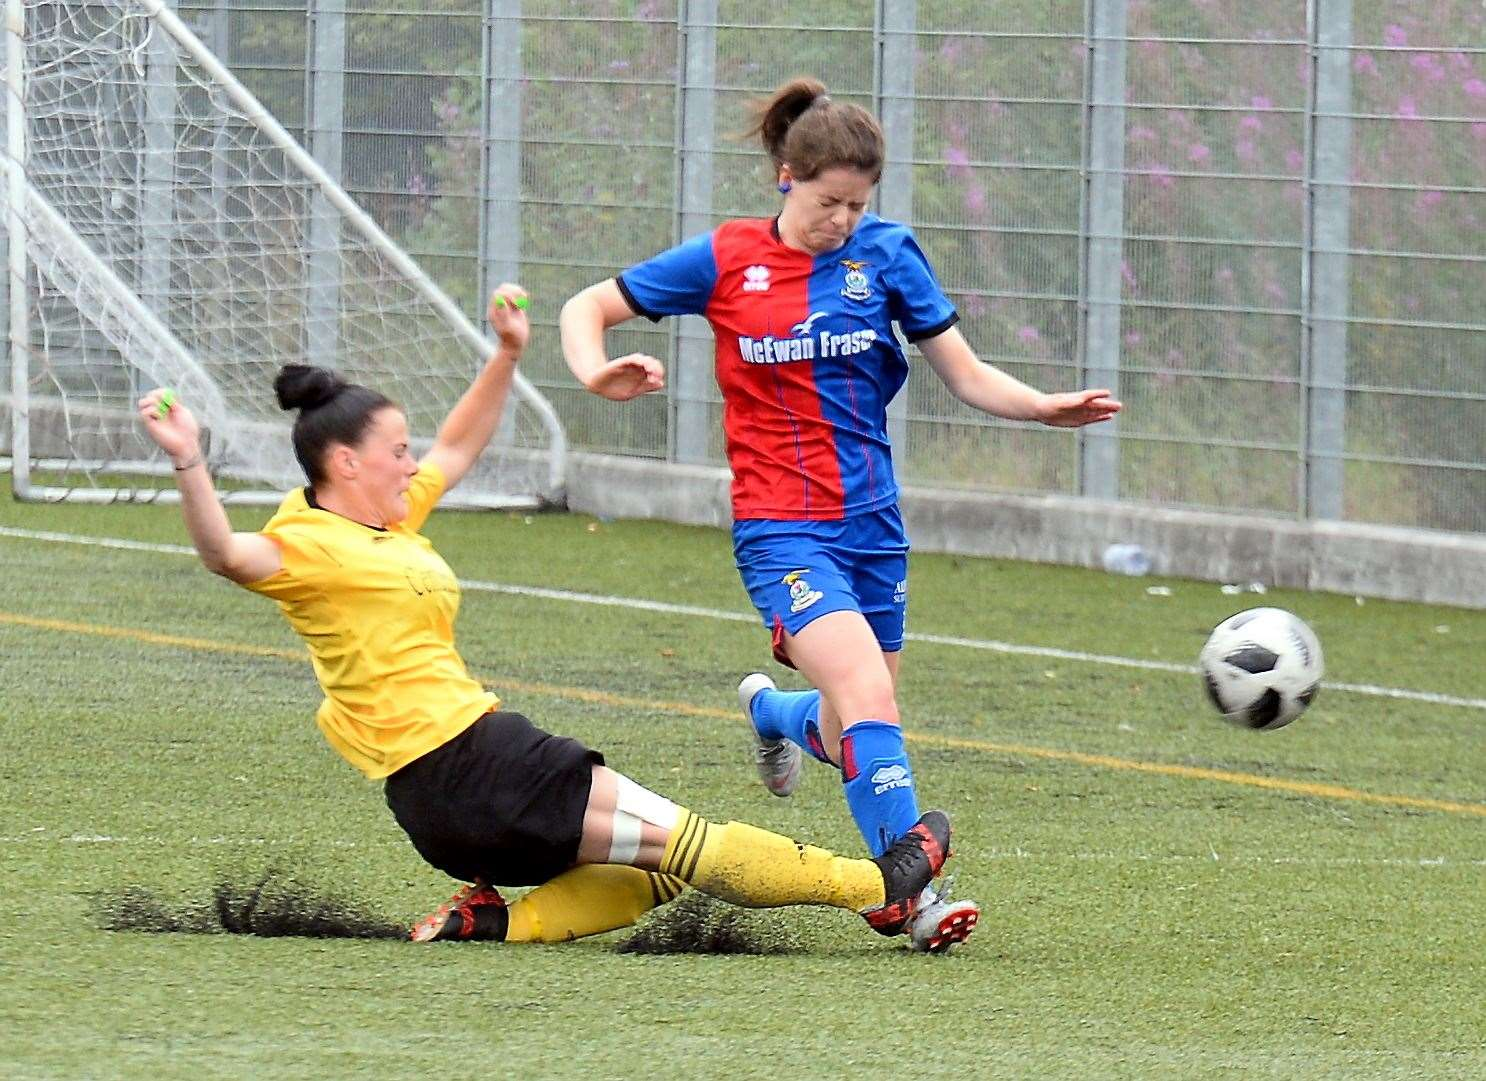 Inverness Caledonian Thistle Women v Cove Rangers in SWF Division One League..ICT's Jodie Malcolm is tackled by Lynne Robertson... Picture: Gary Anthony. Image No..